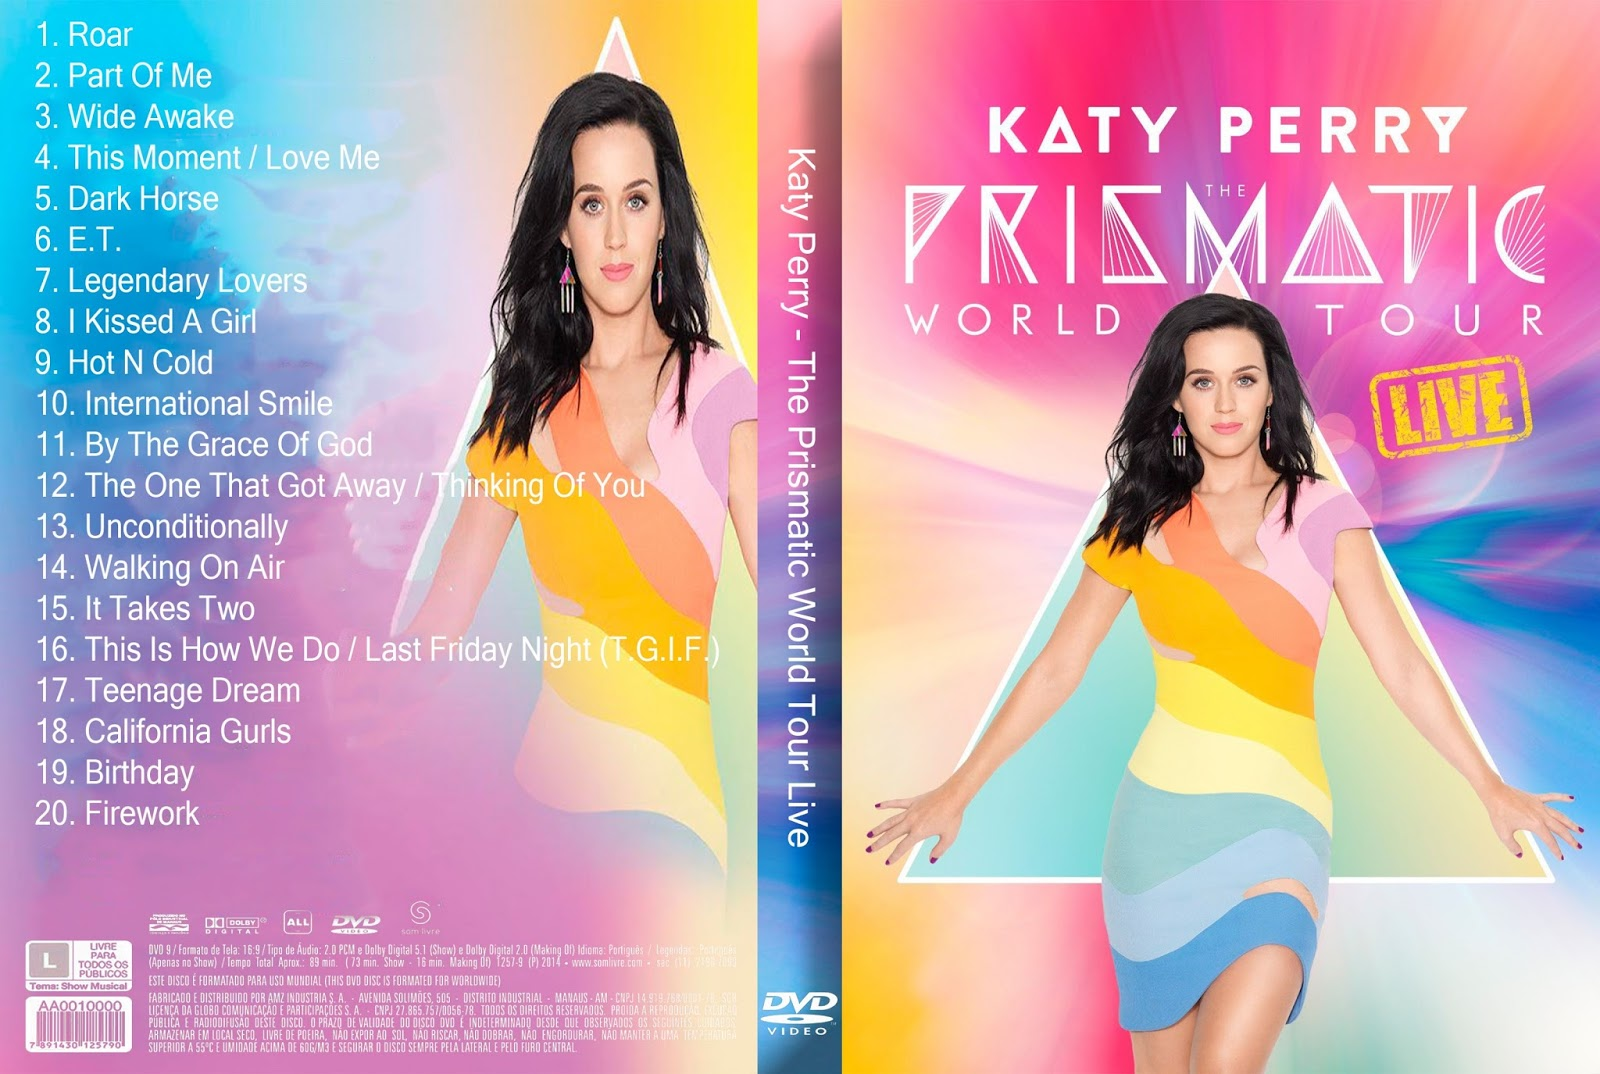 Download Katy Perry Prismatic World Tour DVD-R KATY 2BPERRY 2B 25E2 2580 2593 2BPRISMATIC 2BWORLD 2BTOUR 2BDVD R 2BXANDAODOWNLOAD